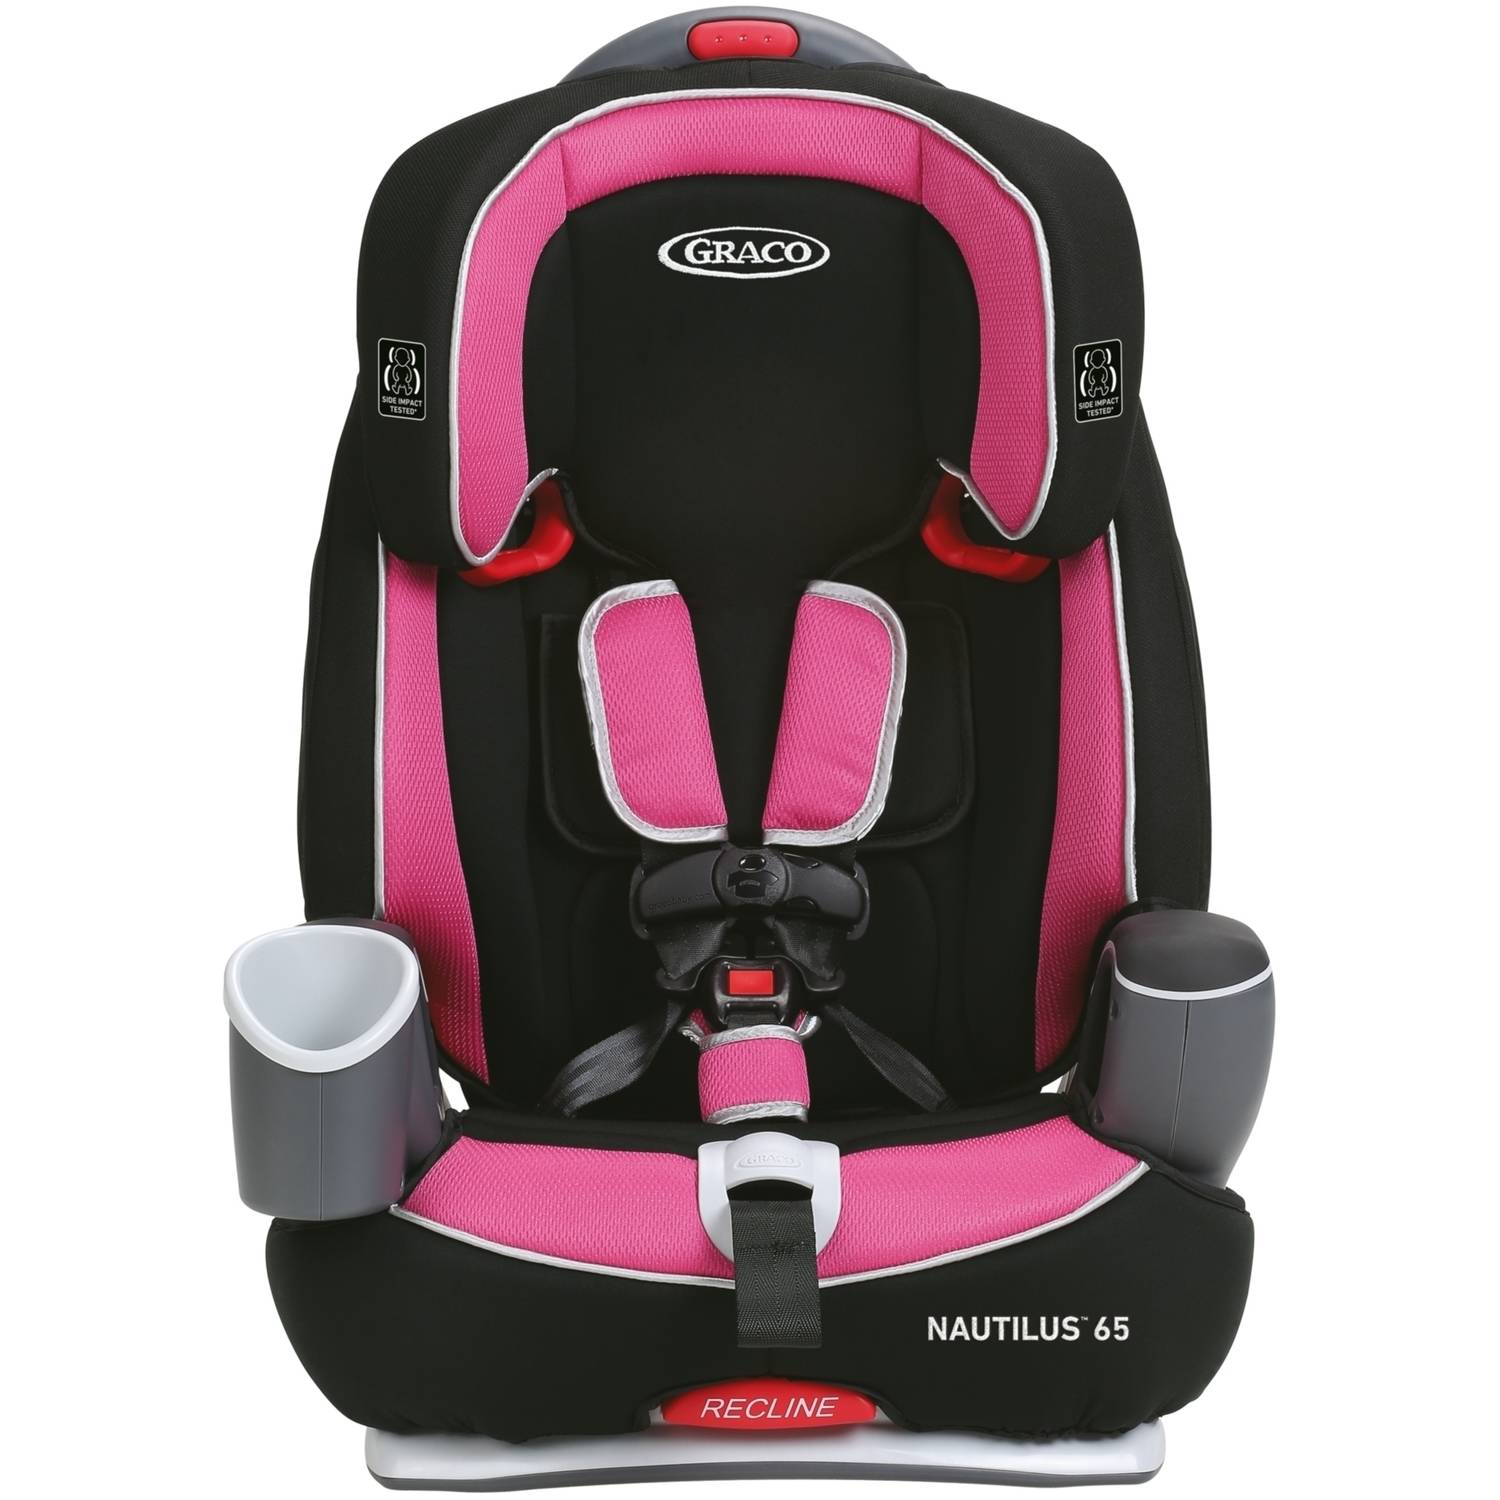 2012 eddie bauer 3 in 1 car seat manual